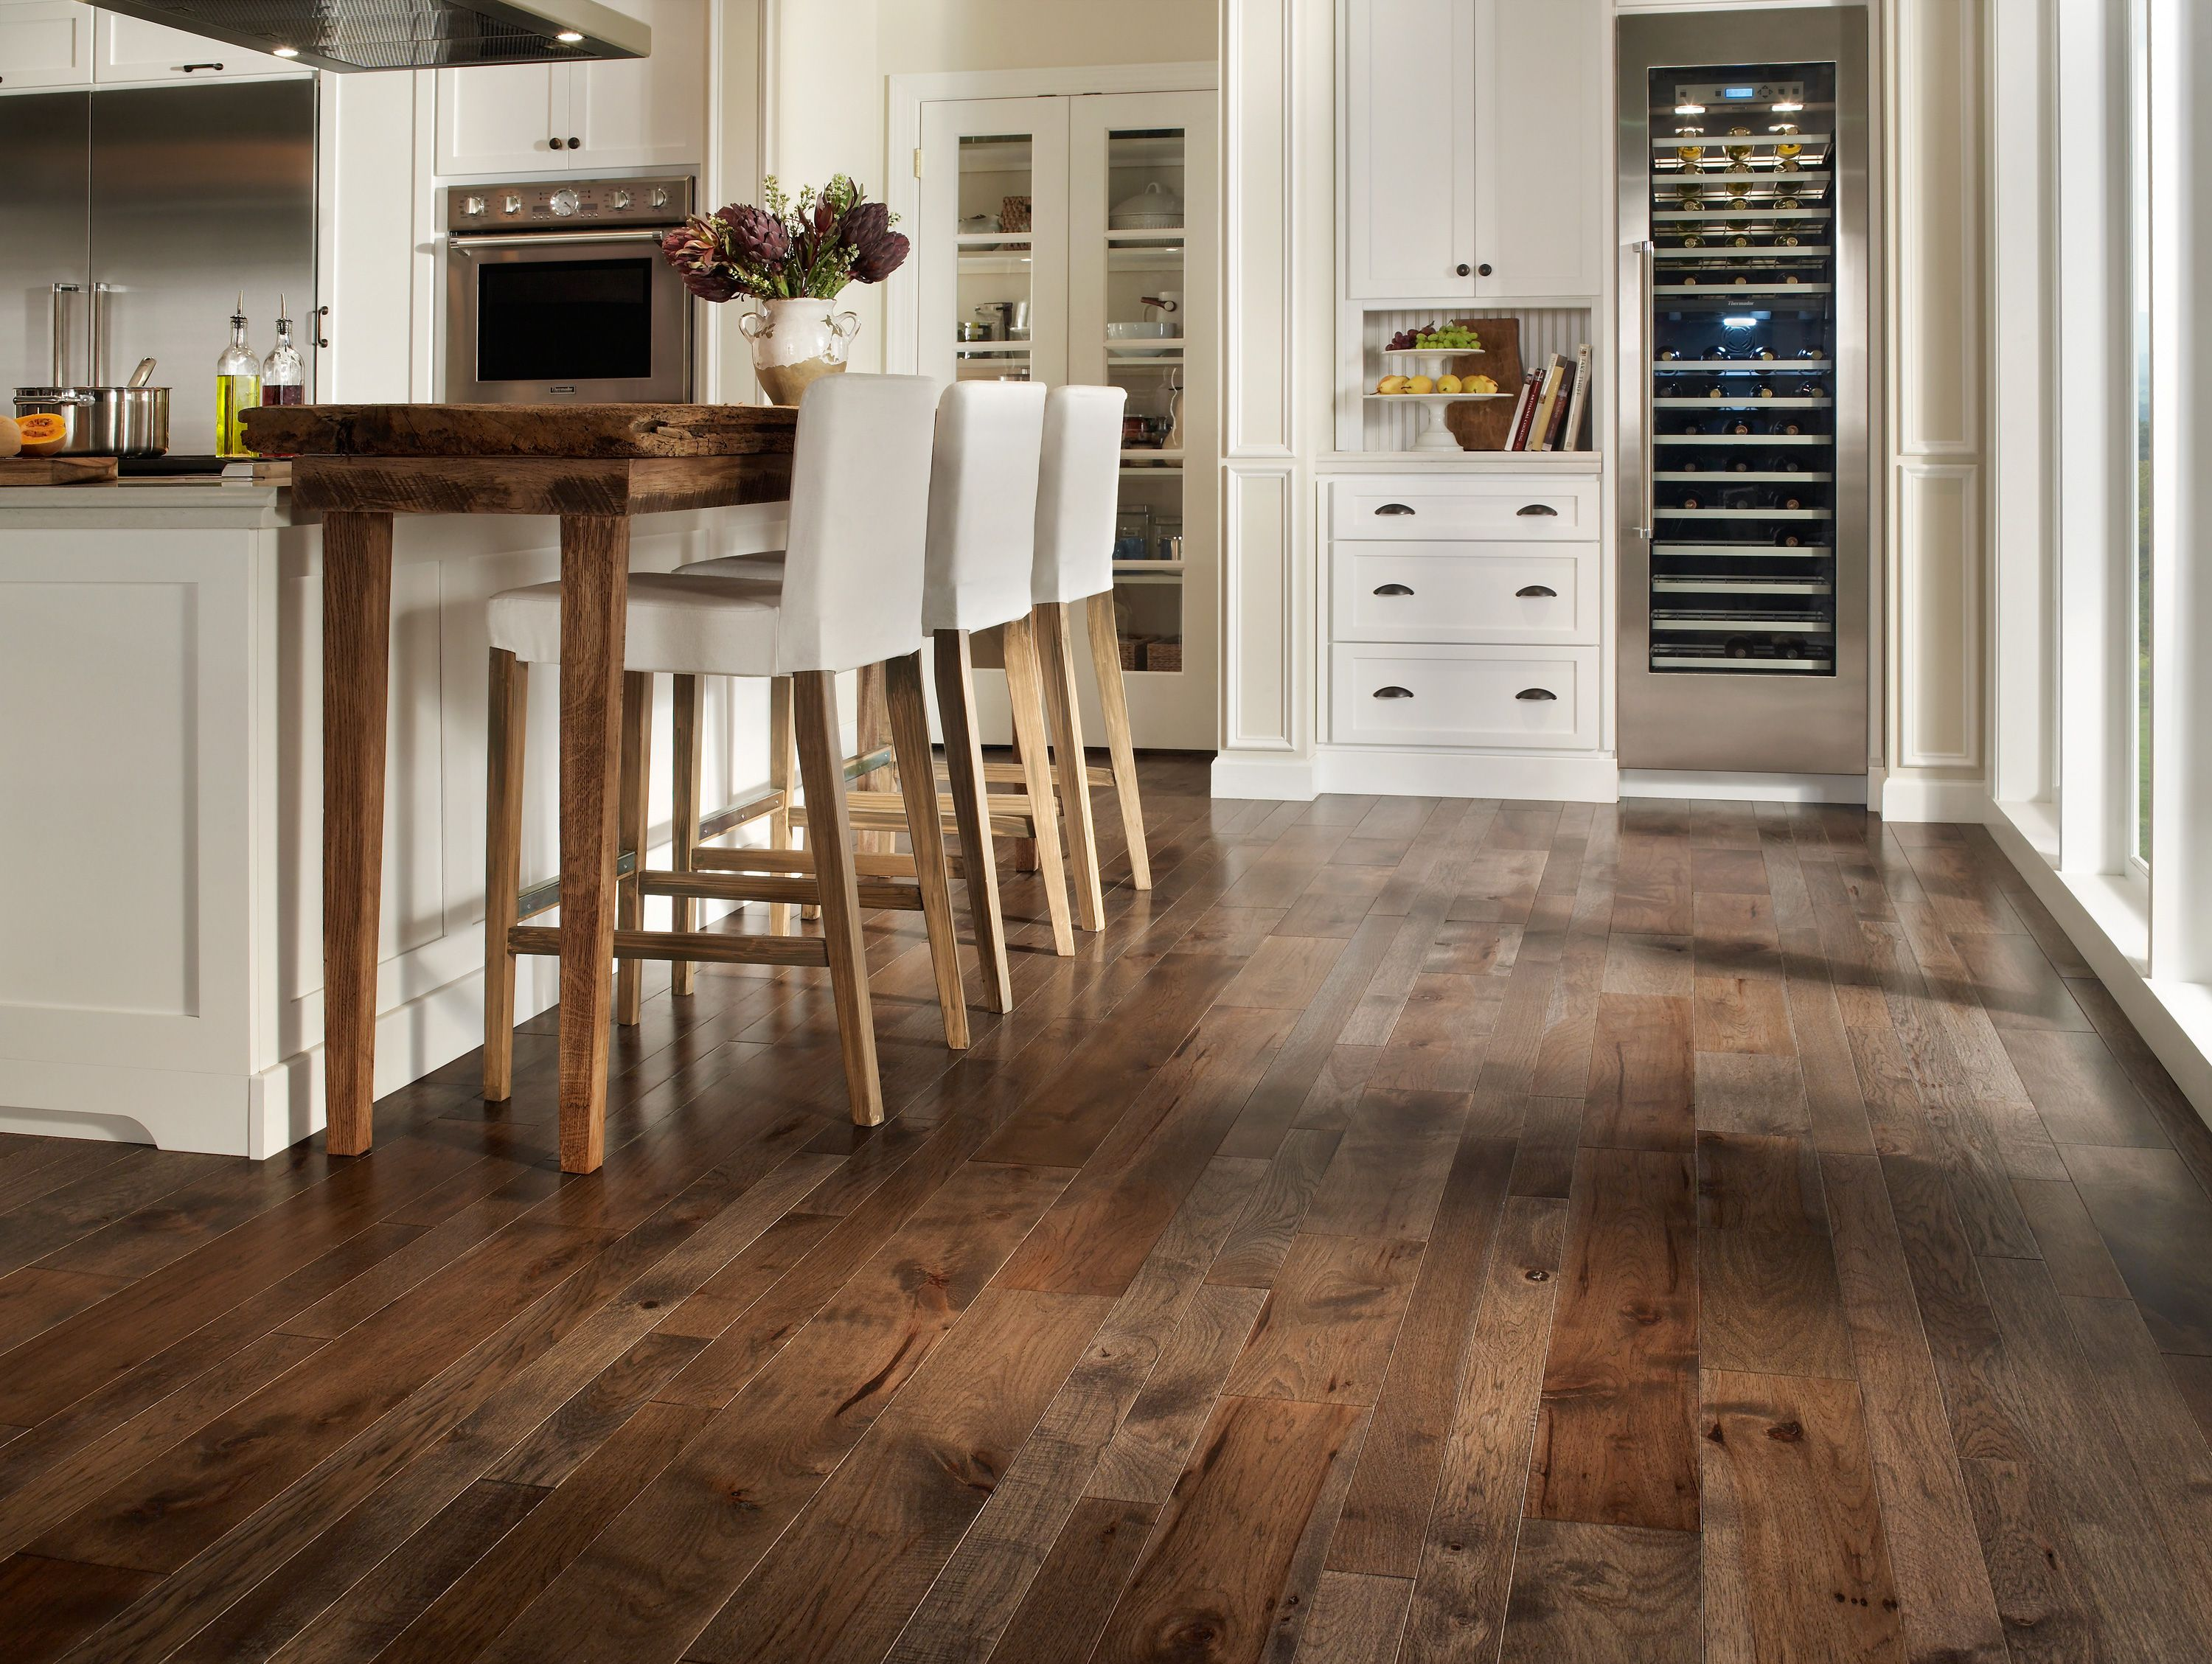 White Kitchen Vs Wood a closer look at bamboo flooring: the pros & cons | white cabinets